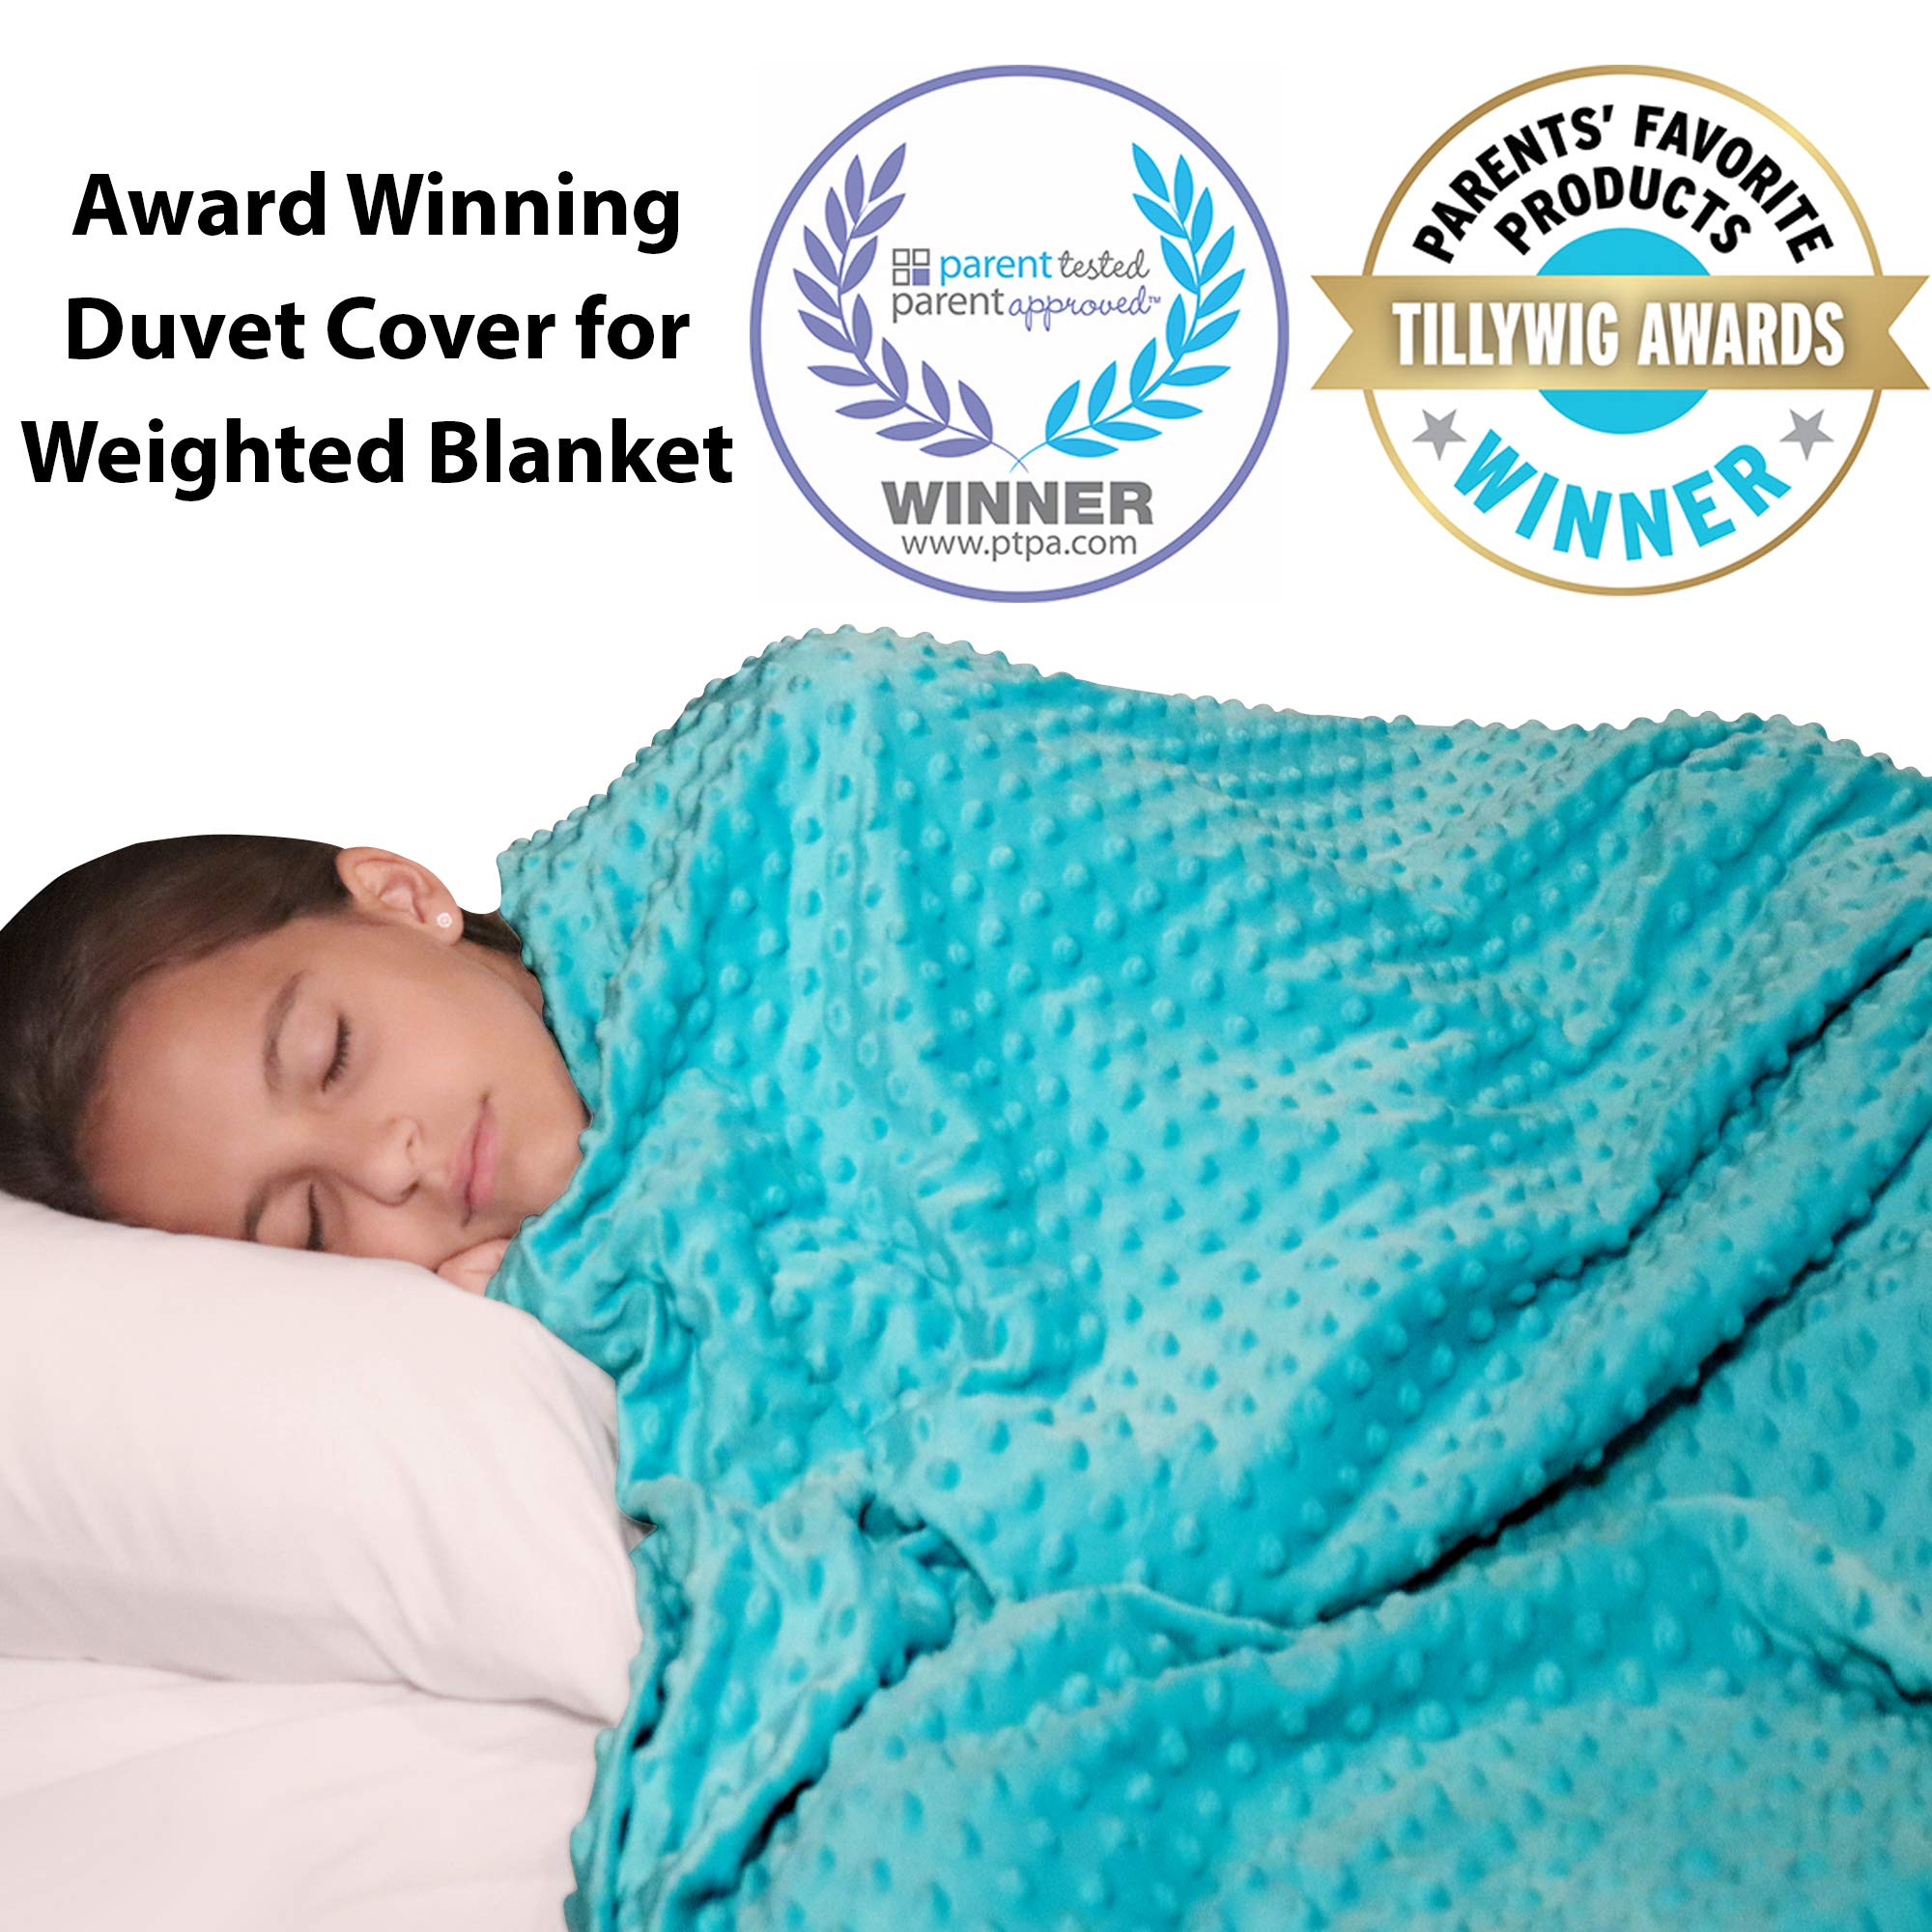 Duvet Cover for Weighted Blanket 48''x 72'' - Cooling Bamboo and Soft Minky Dot - Removable Duvet Cover for Hot and Cold Nights - Weighted Blanket Not Included by Hazli